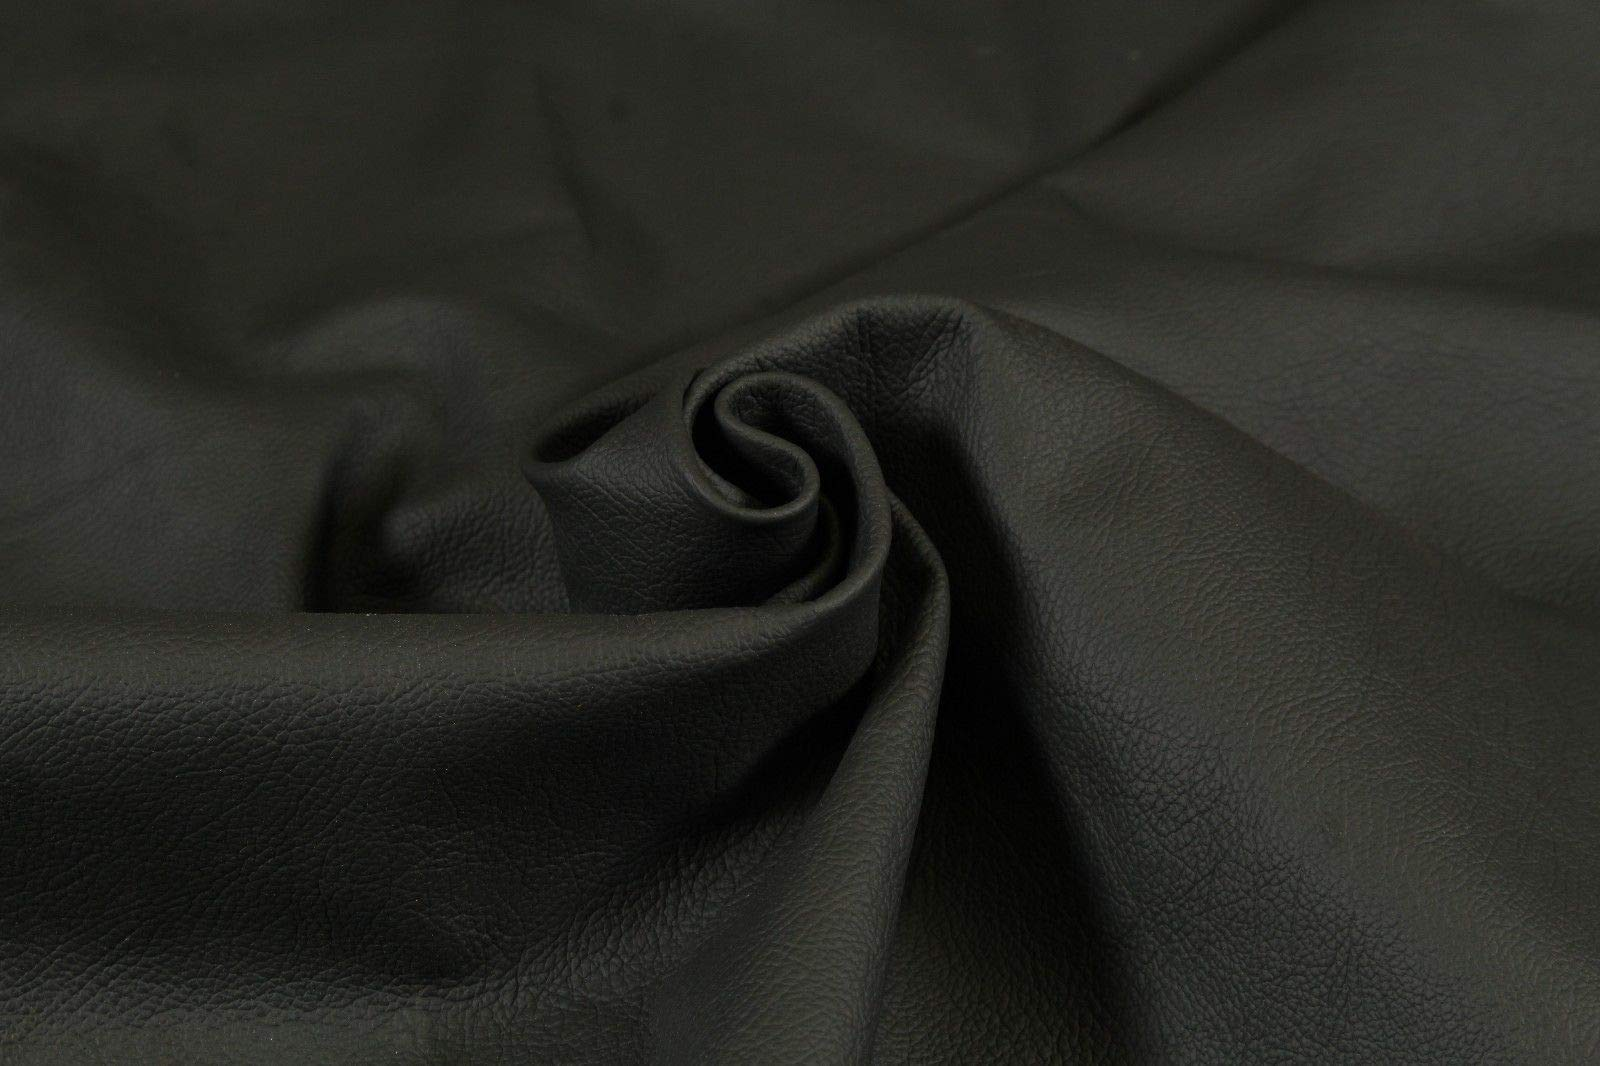 Stunning Charcoal Gray Automotive Leather Hides AVG 44 sqft ONLY $99 PER HIDE!!